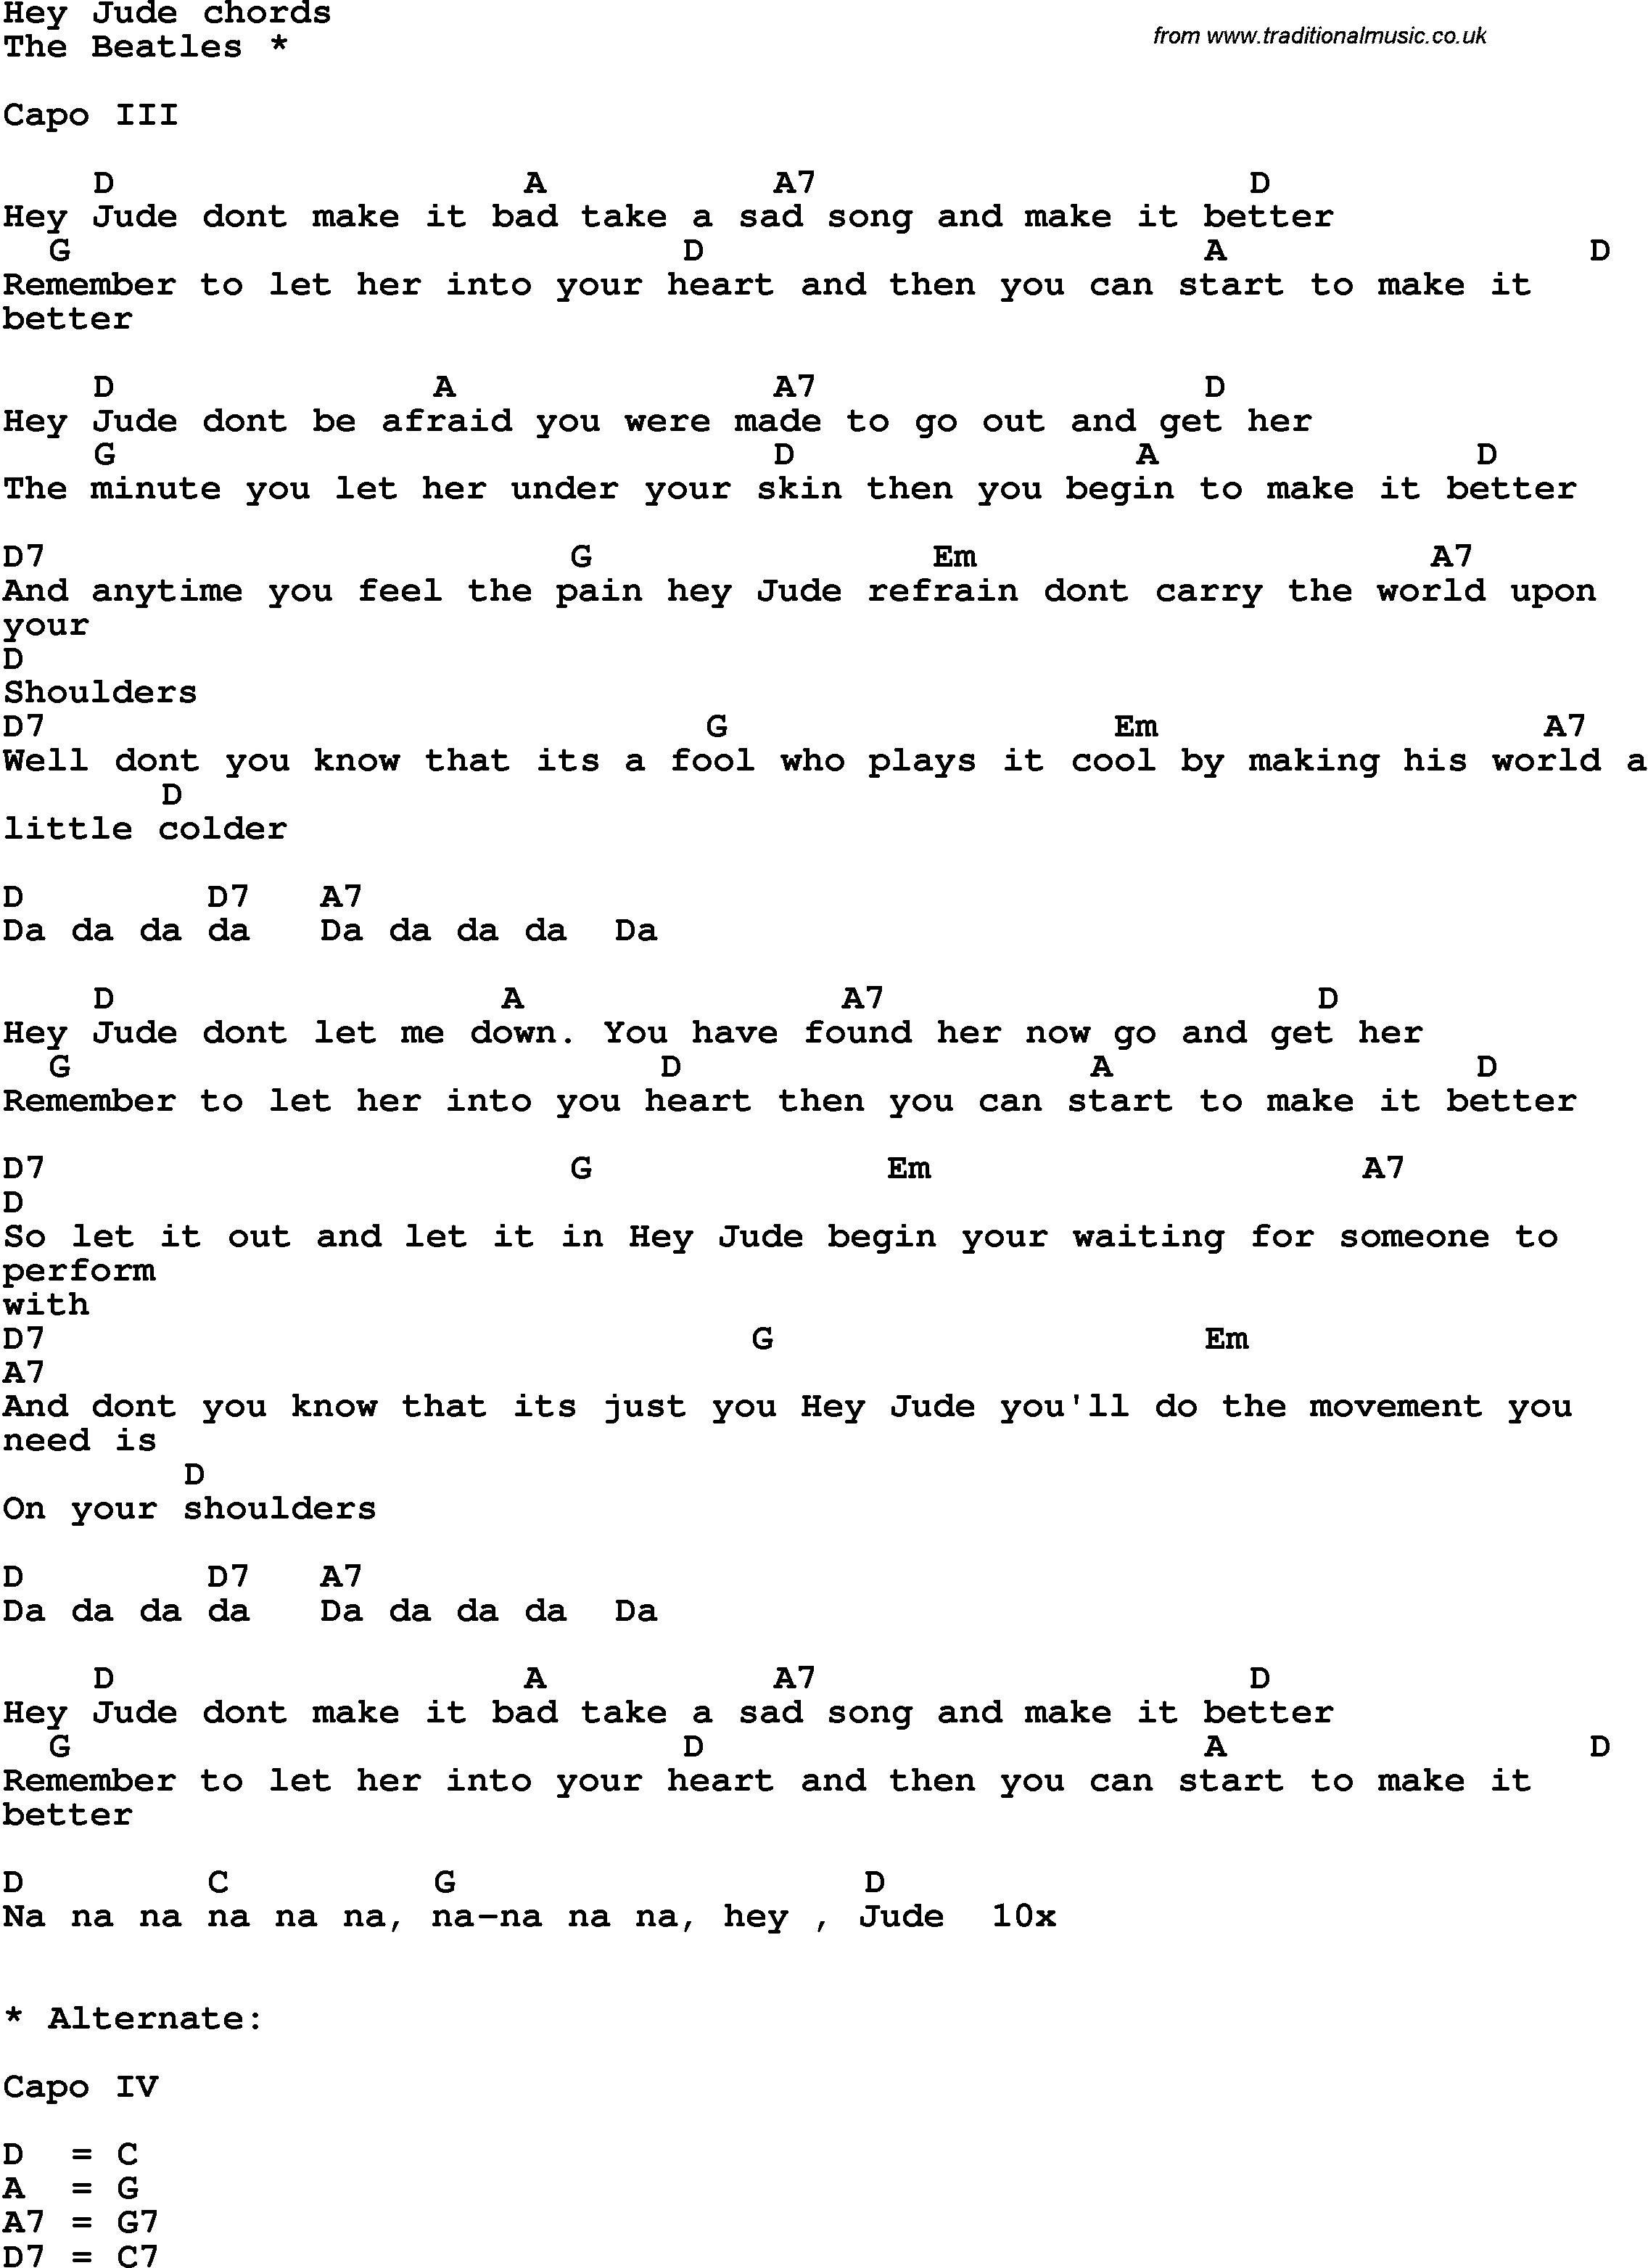 Song lyrics with guitar chords for hey jude the beatles song lyrics with guitar chords for hey jude the beatles hexwebz Images